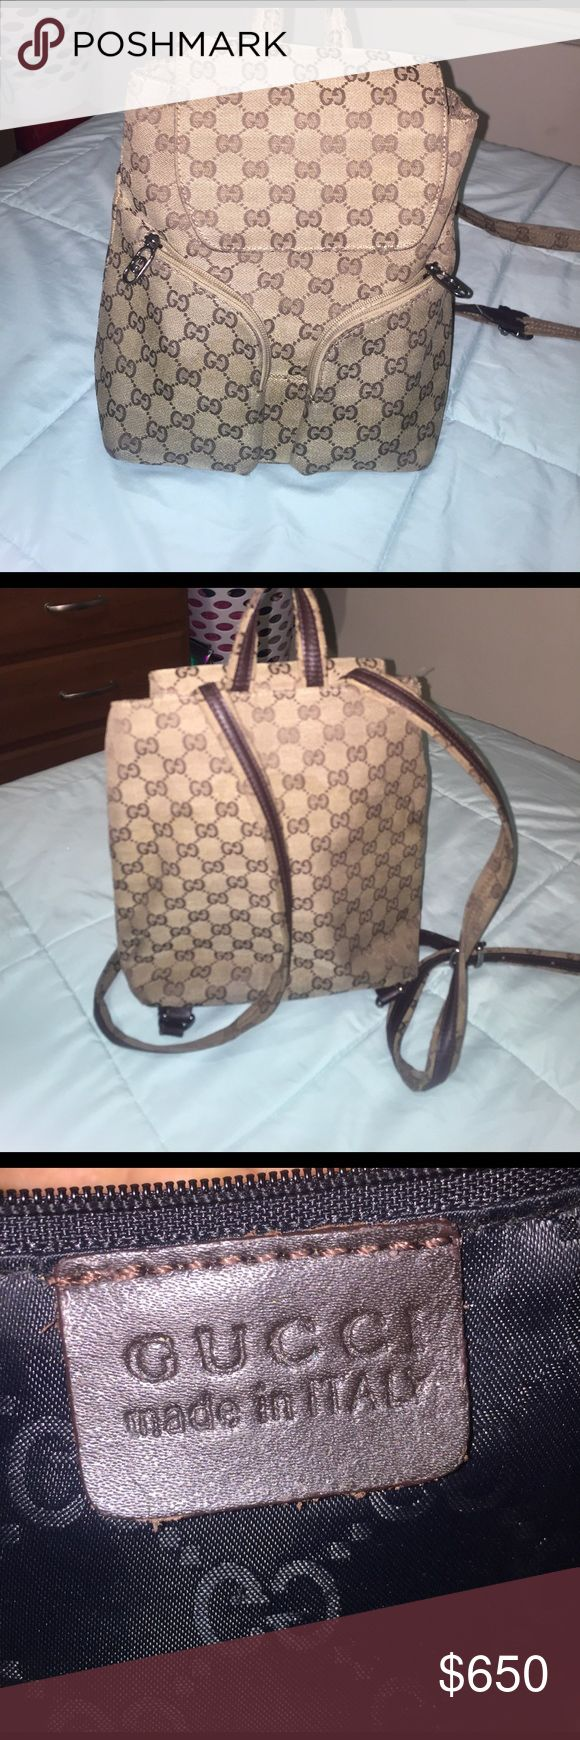 Gucci Bookbag Authentic Gucci Designer Bookbag Gucci Bags Backpacks